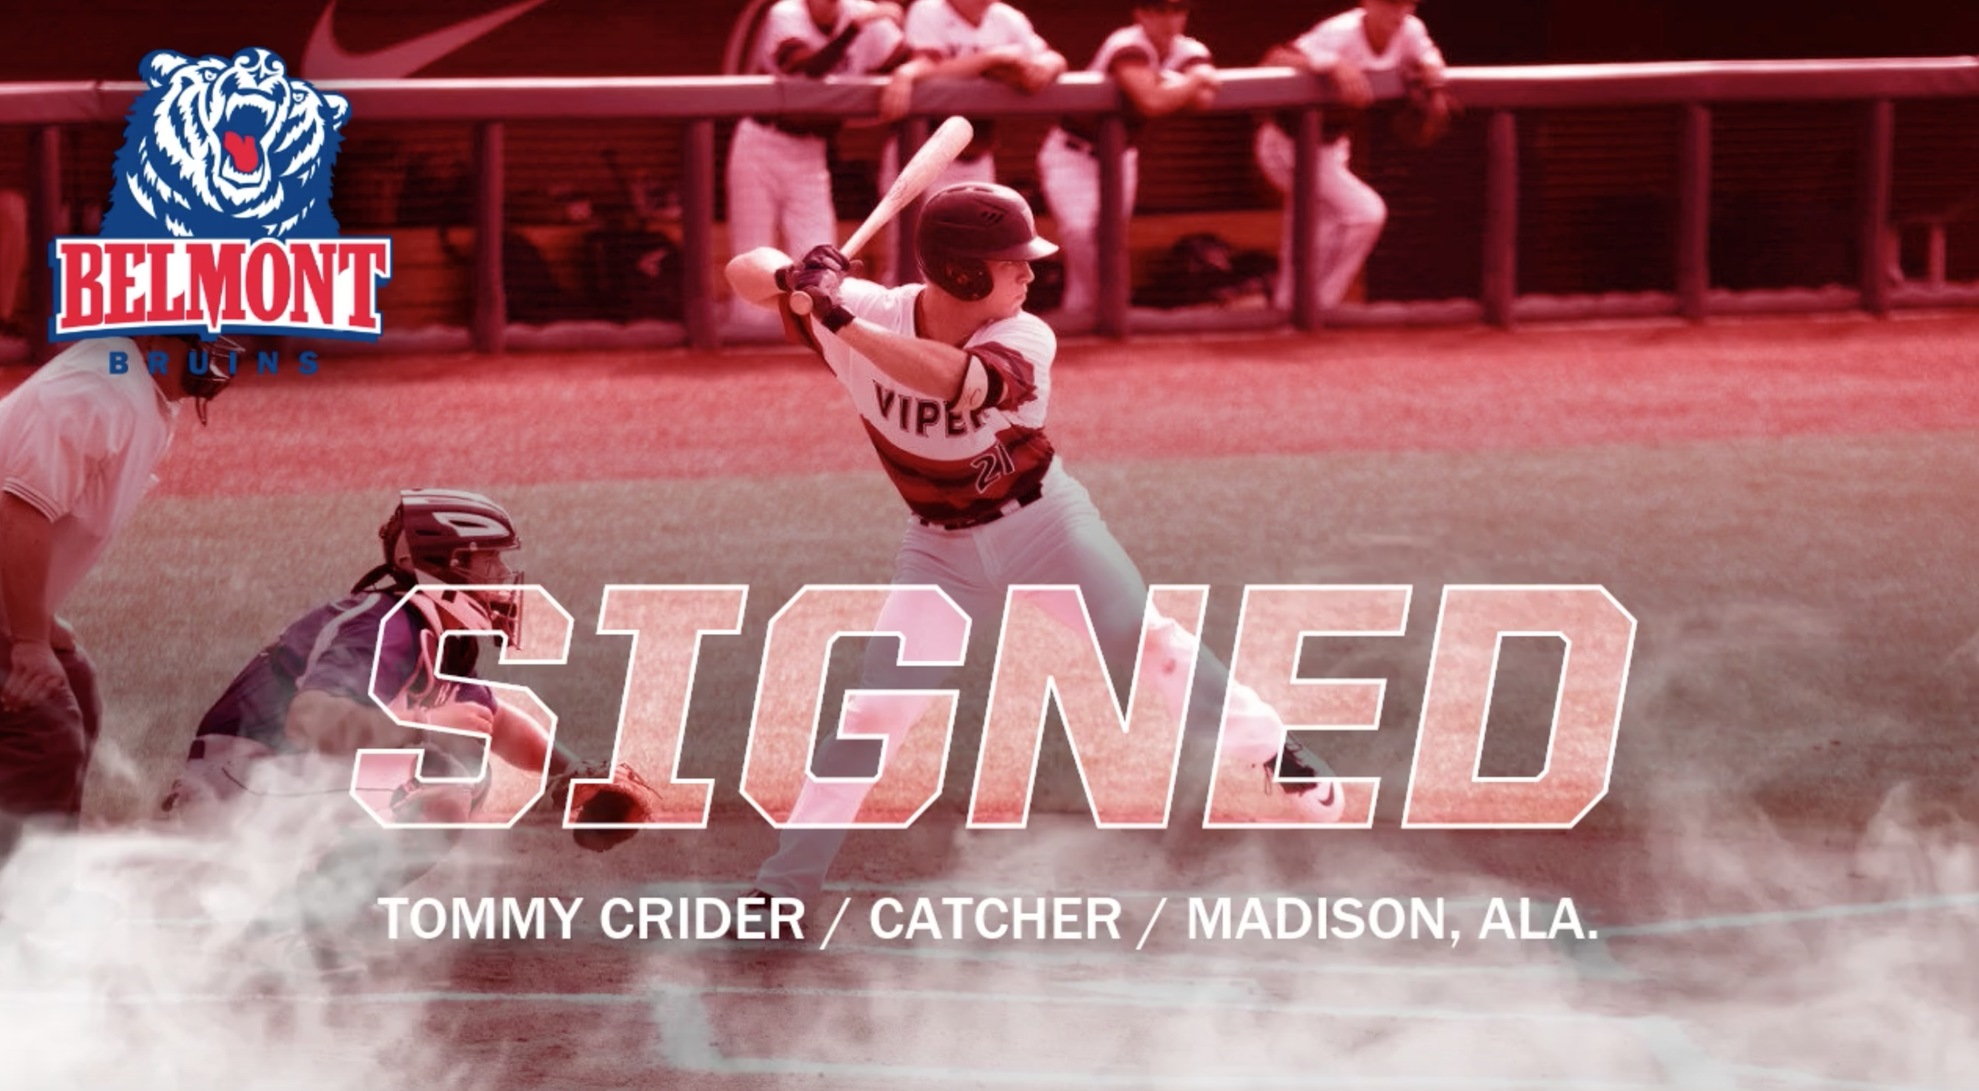 Crider Signs with the Bruins